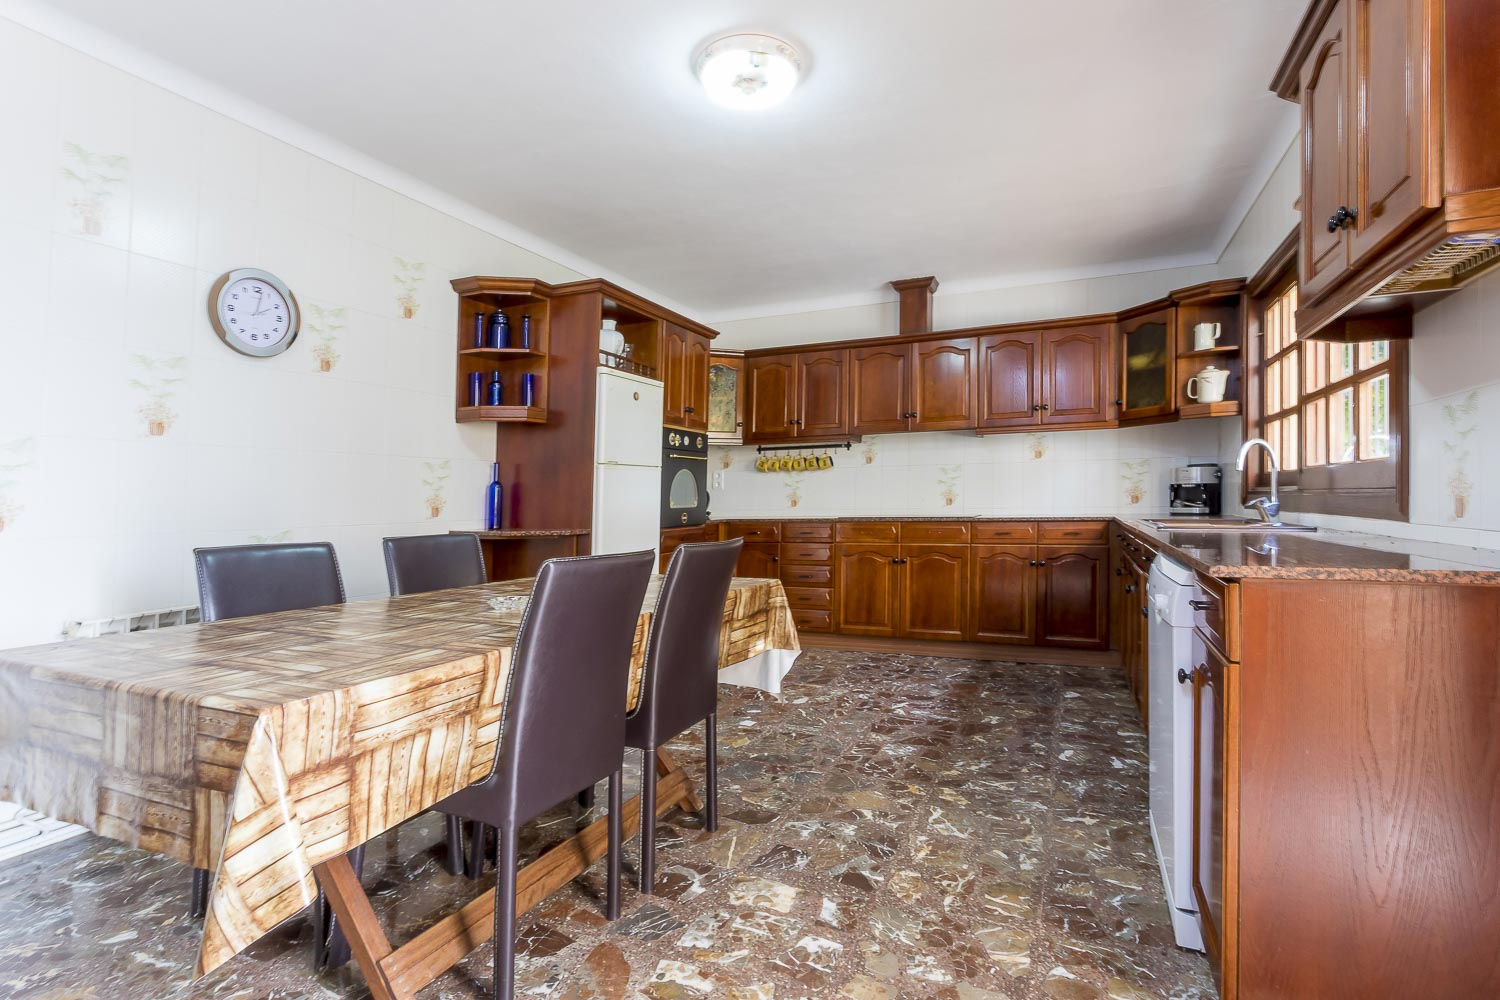 Big wood kitchen with dining-table in a rental house of Ibiza